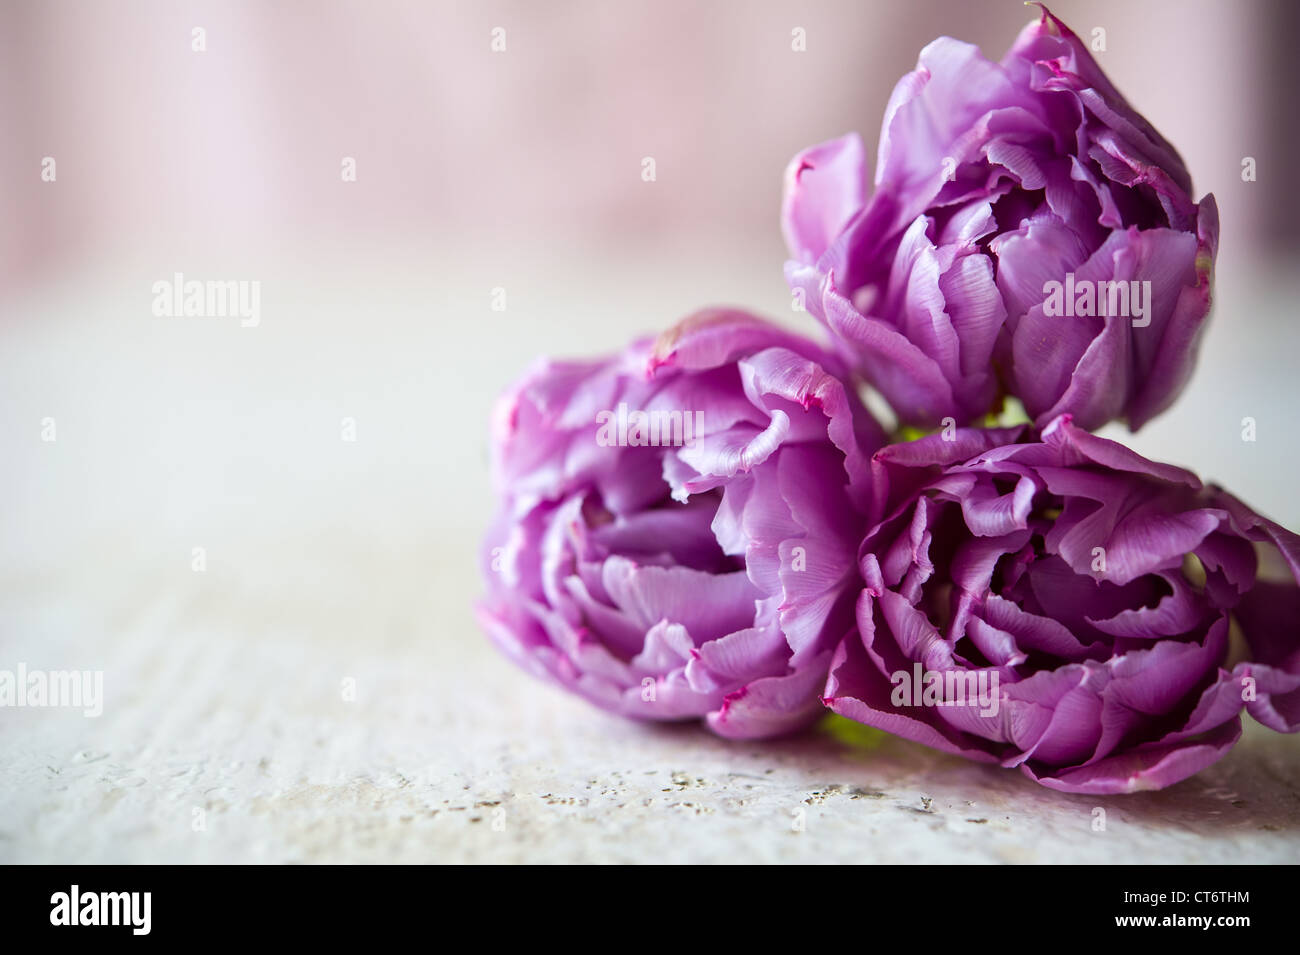 Bouquet of three purple tulips lays on the white table. Blurring background with copy space, shallow DOF - Stock Image